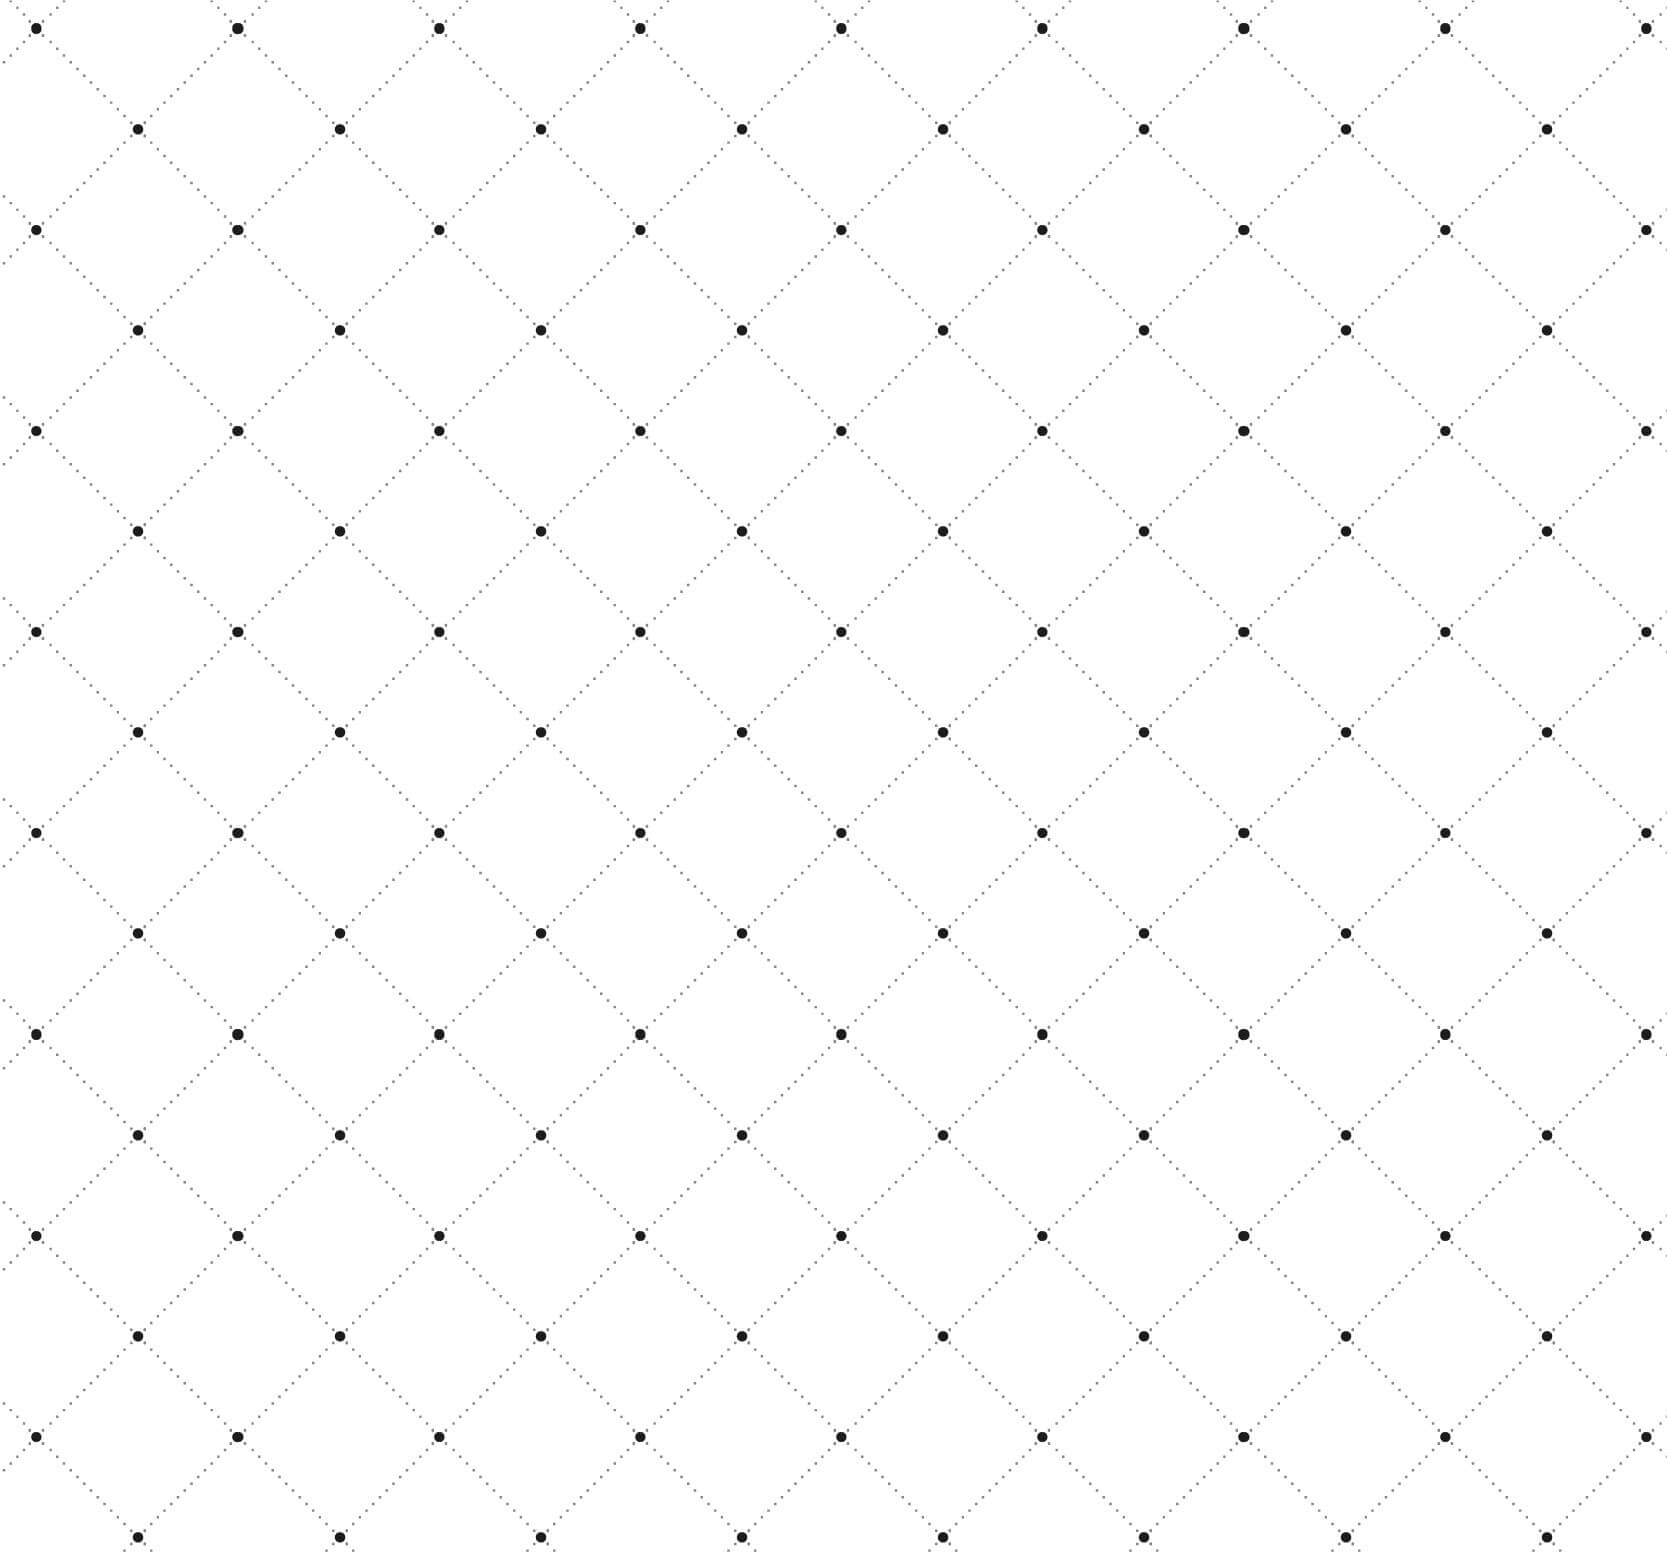 Abstract dotted pattern 2